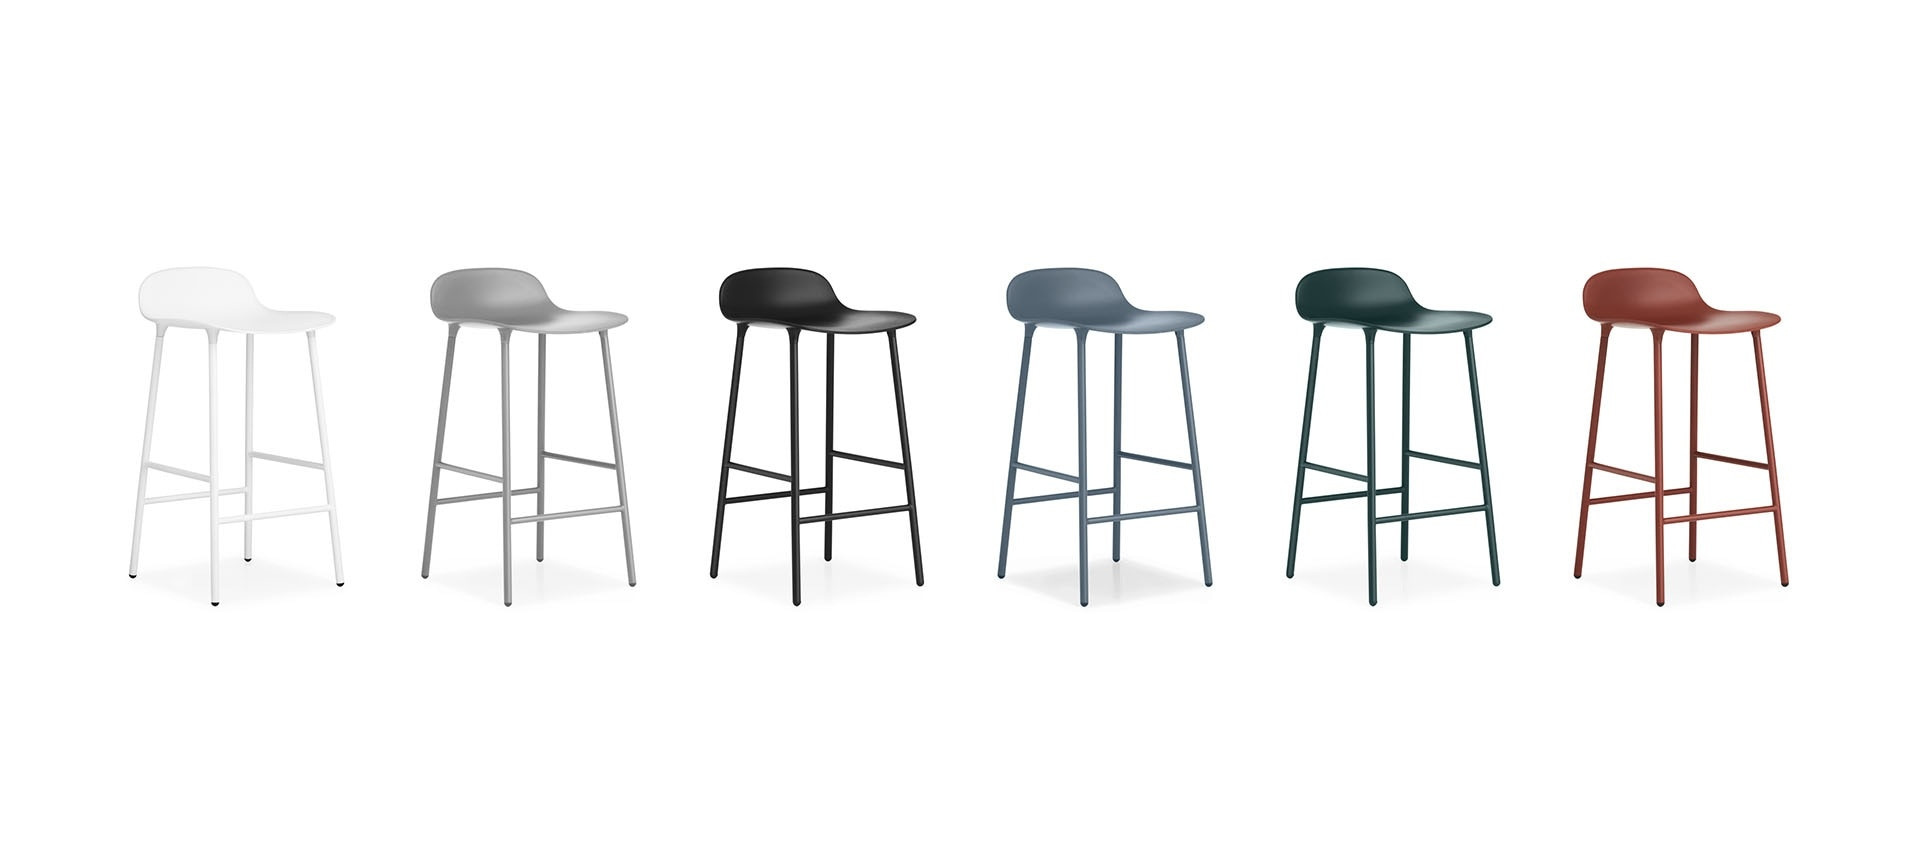 4 Tabourets De Bar Stockholm Tabouret Quotform Quot Version Métallique